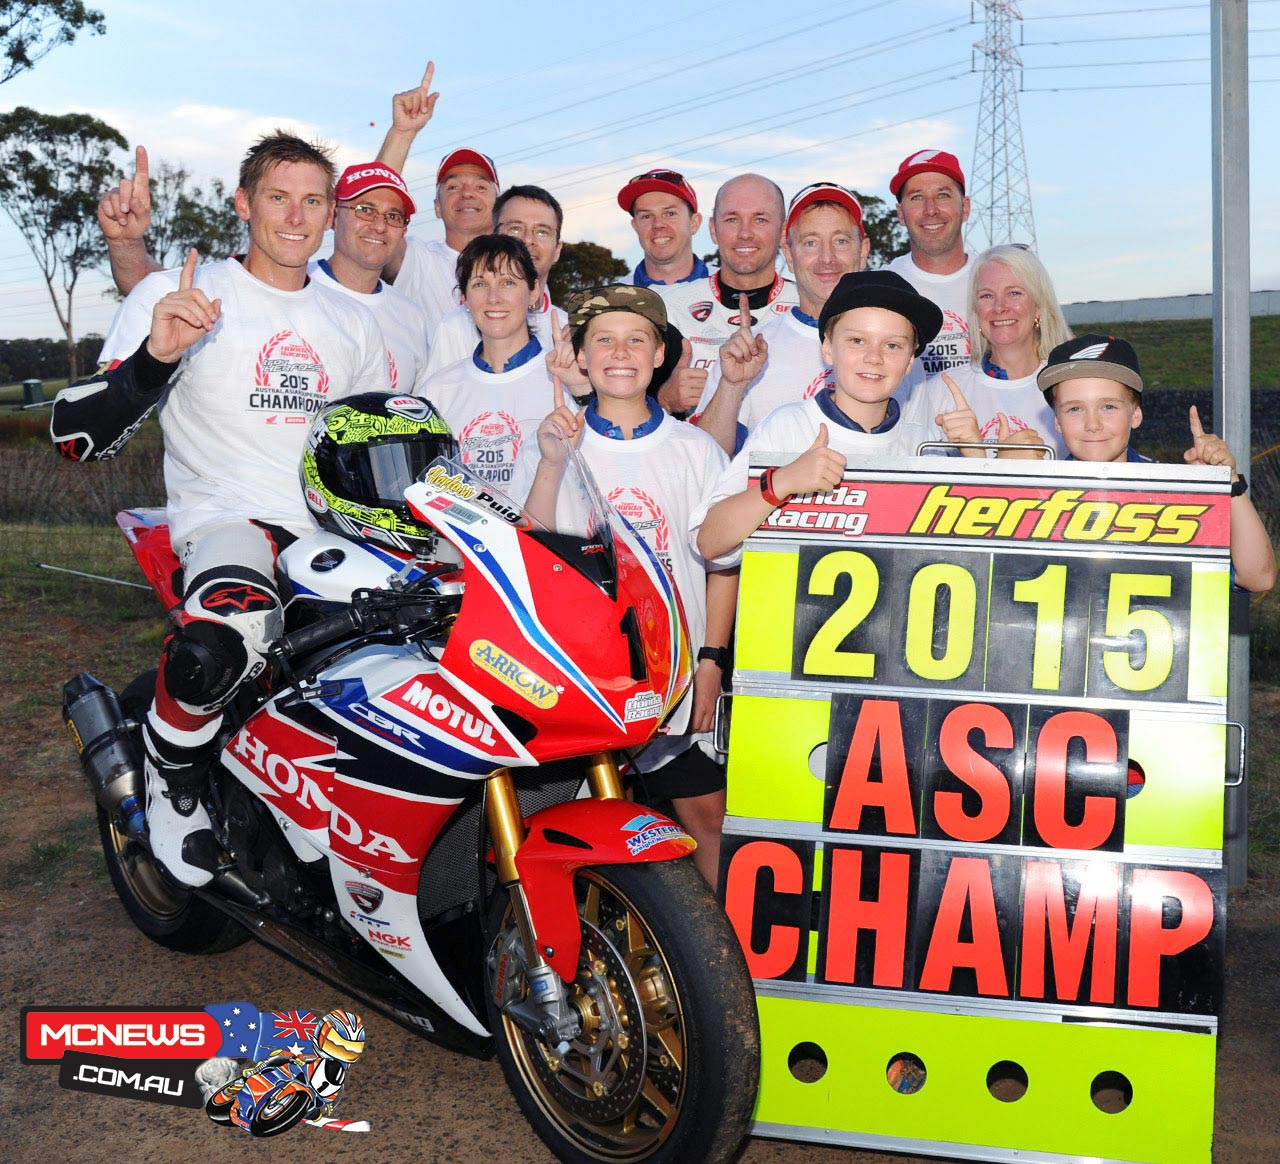 Troy Herfoss - 2015 Swann Insurance Australasian Superbike Champion and AFX-SBK Champion with Team Honda Racing